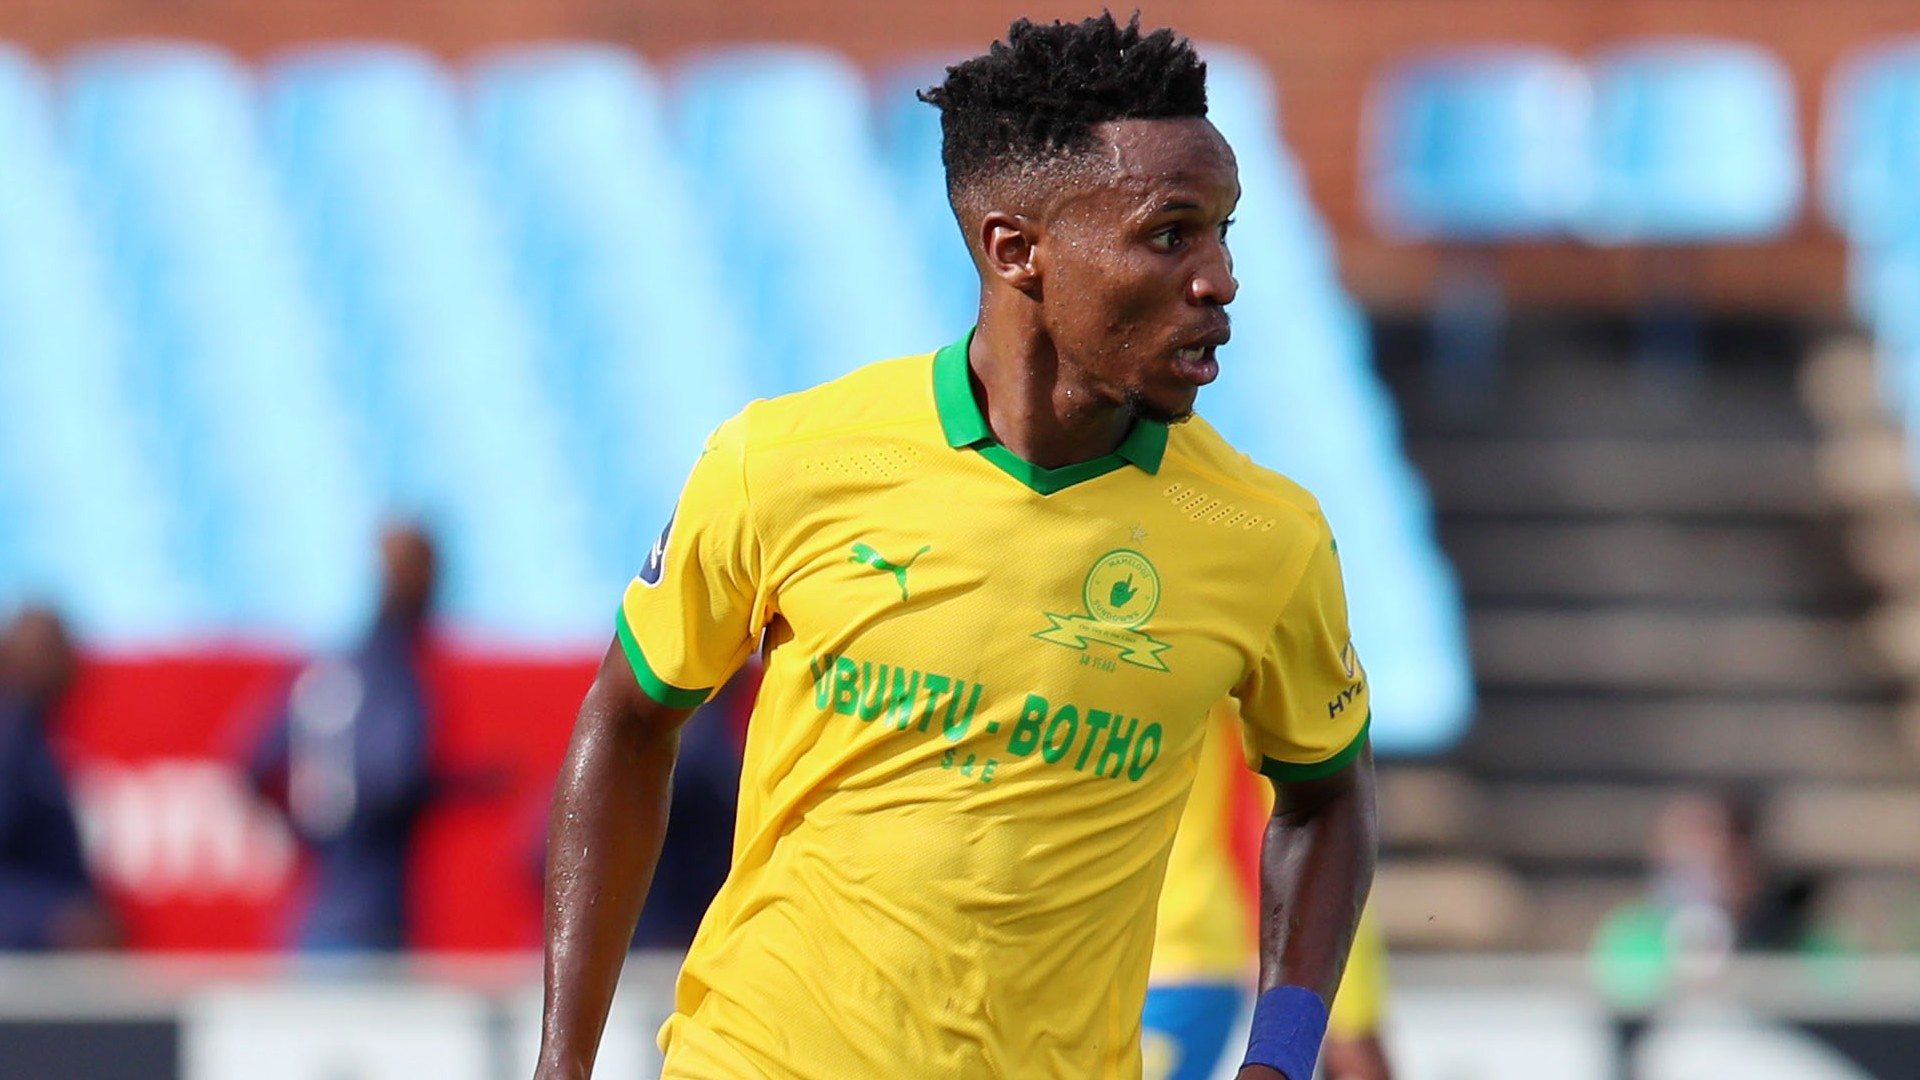 Mamelodi Sundowns are not well as a team - Zwane